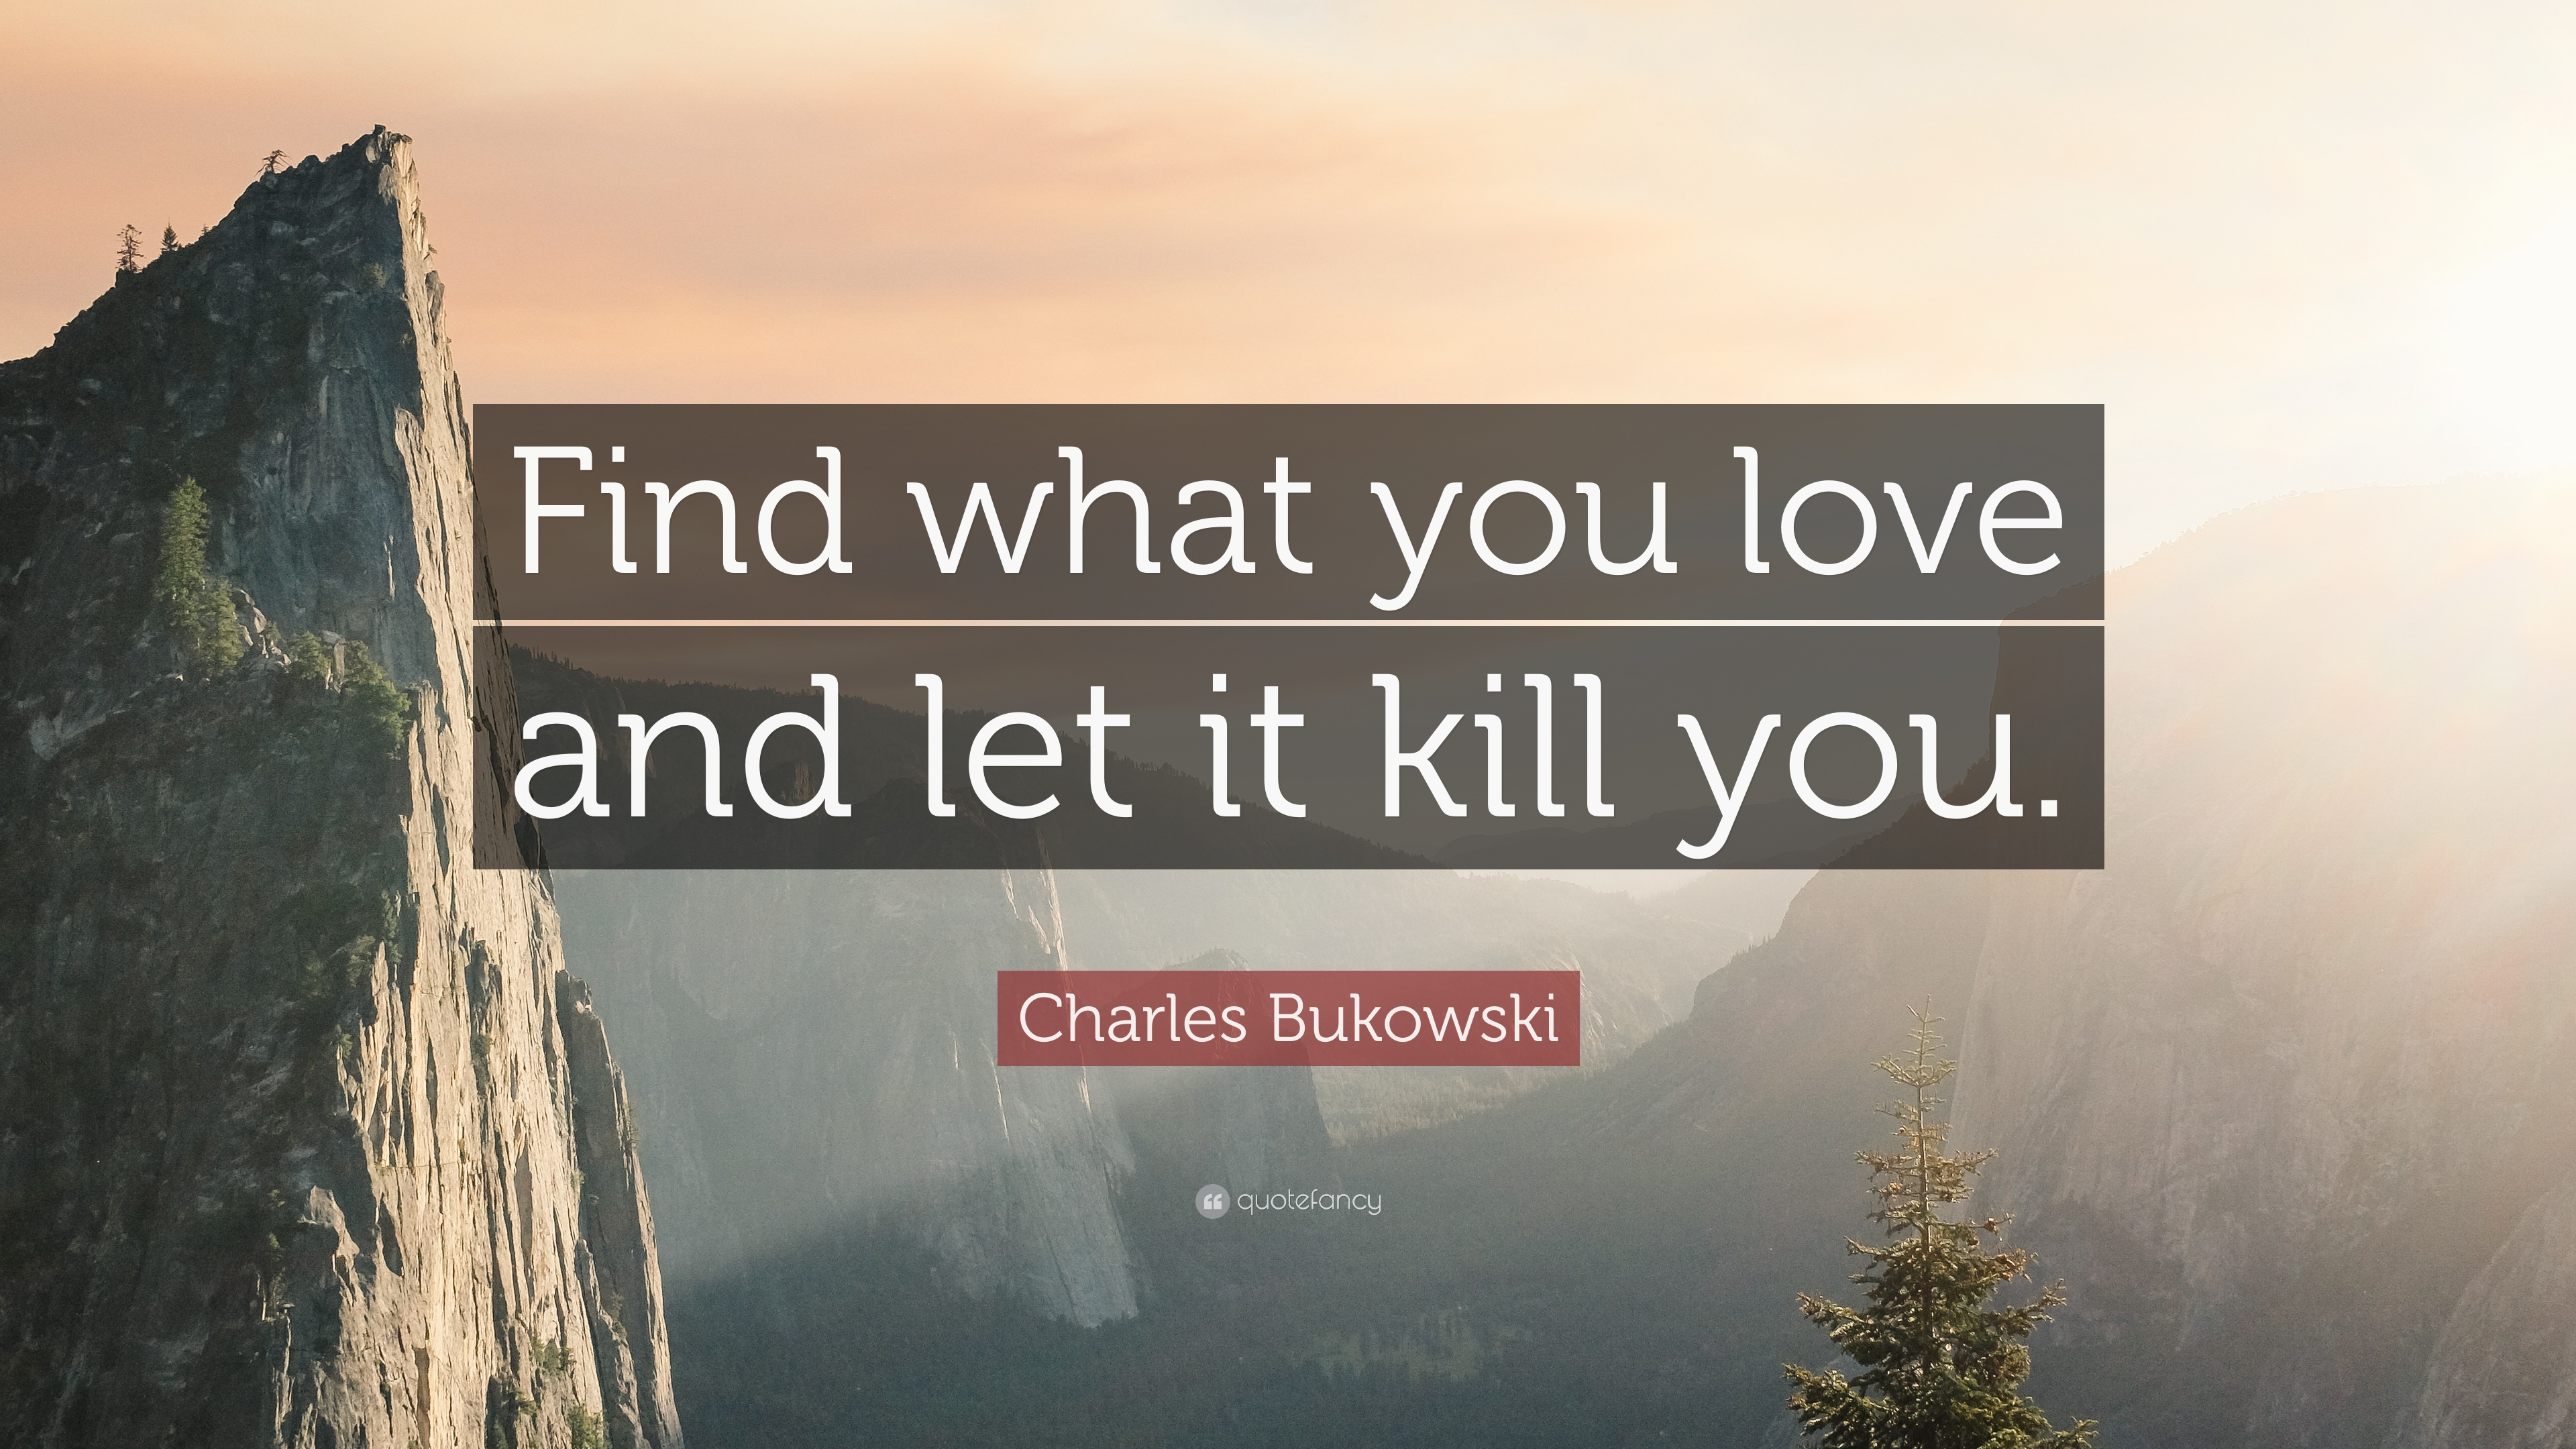 Find what you love and let it kill you bukowski